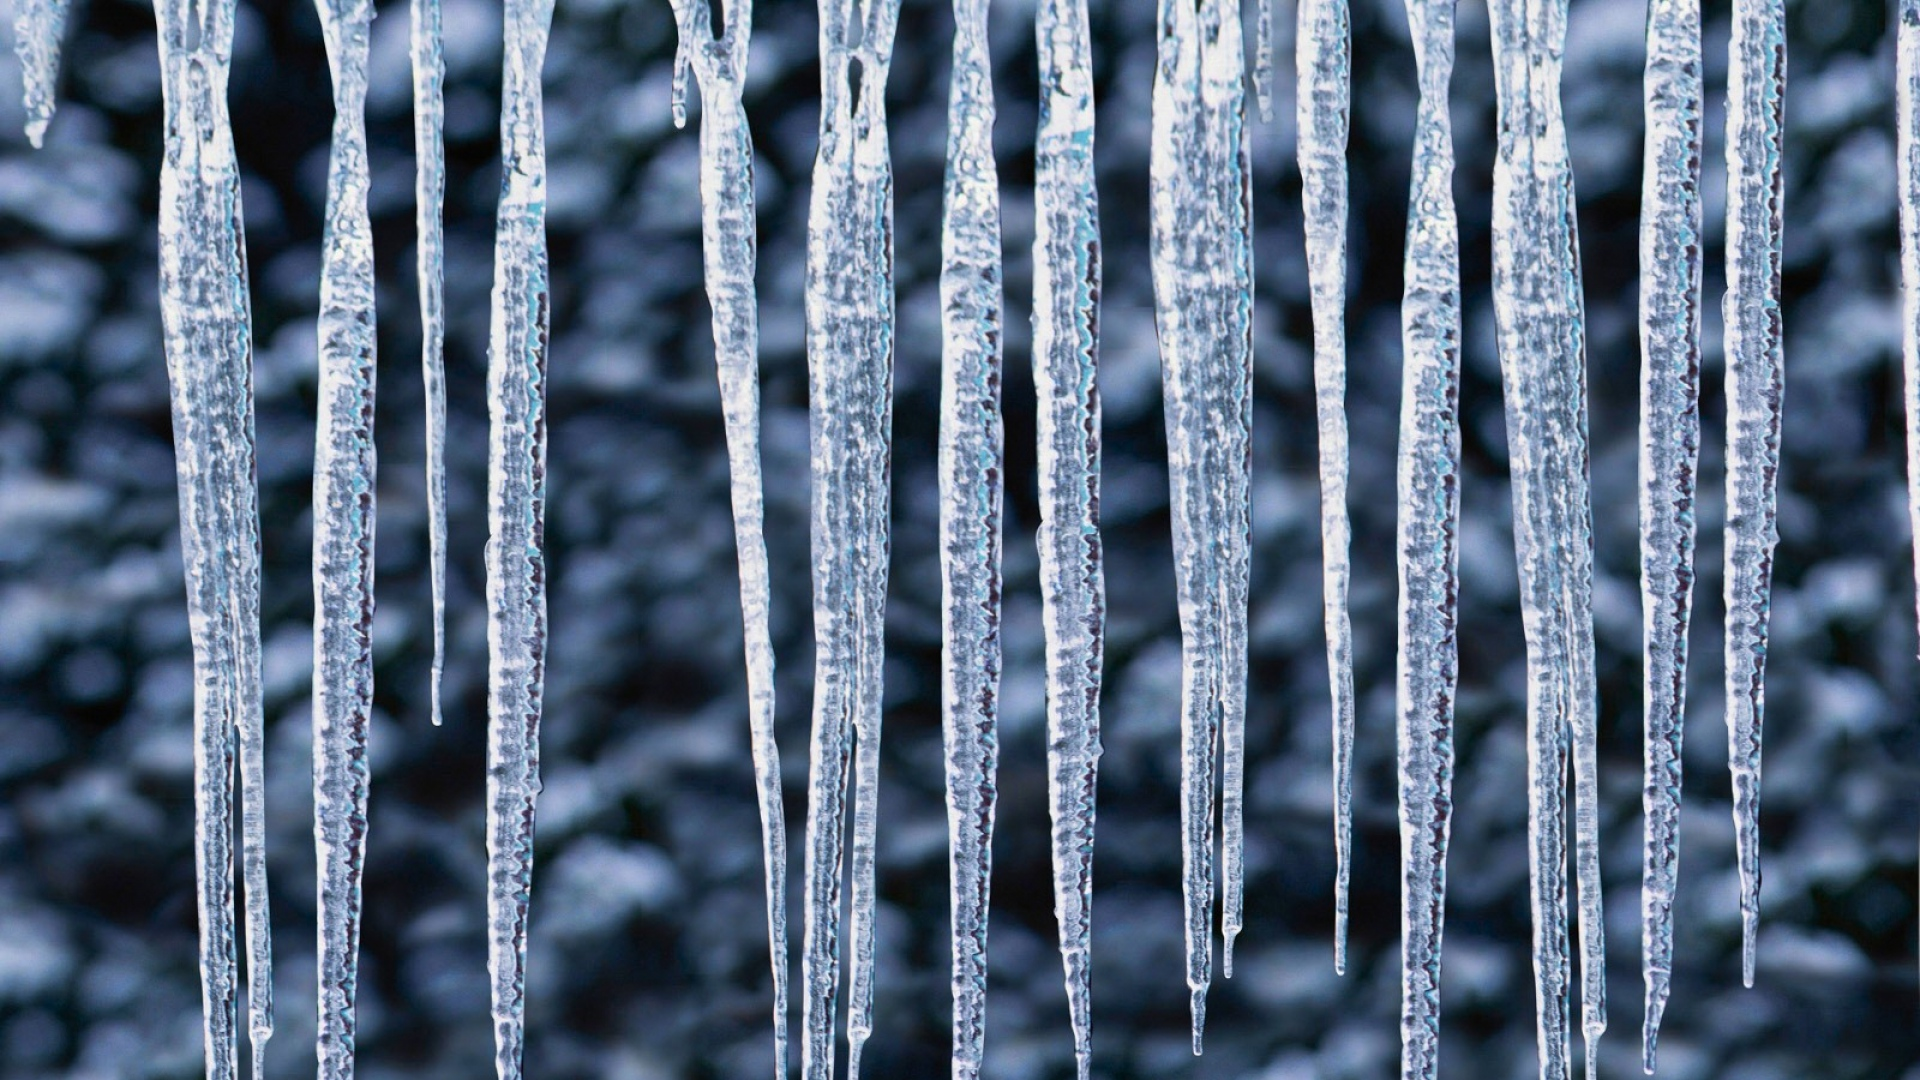 Download wallpaper 1920x1080 icicles frost ice hot full hd 1080p hd